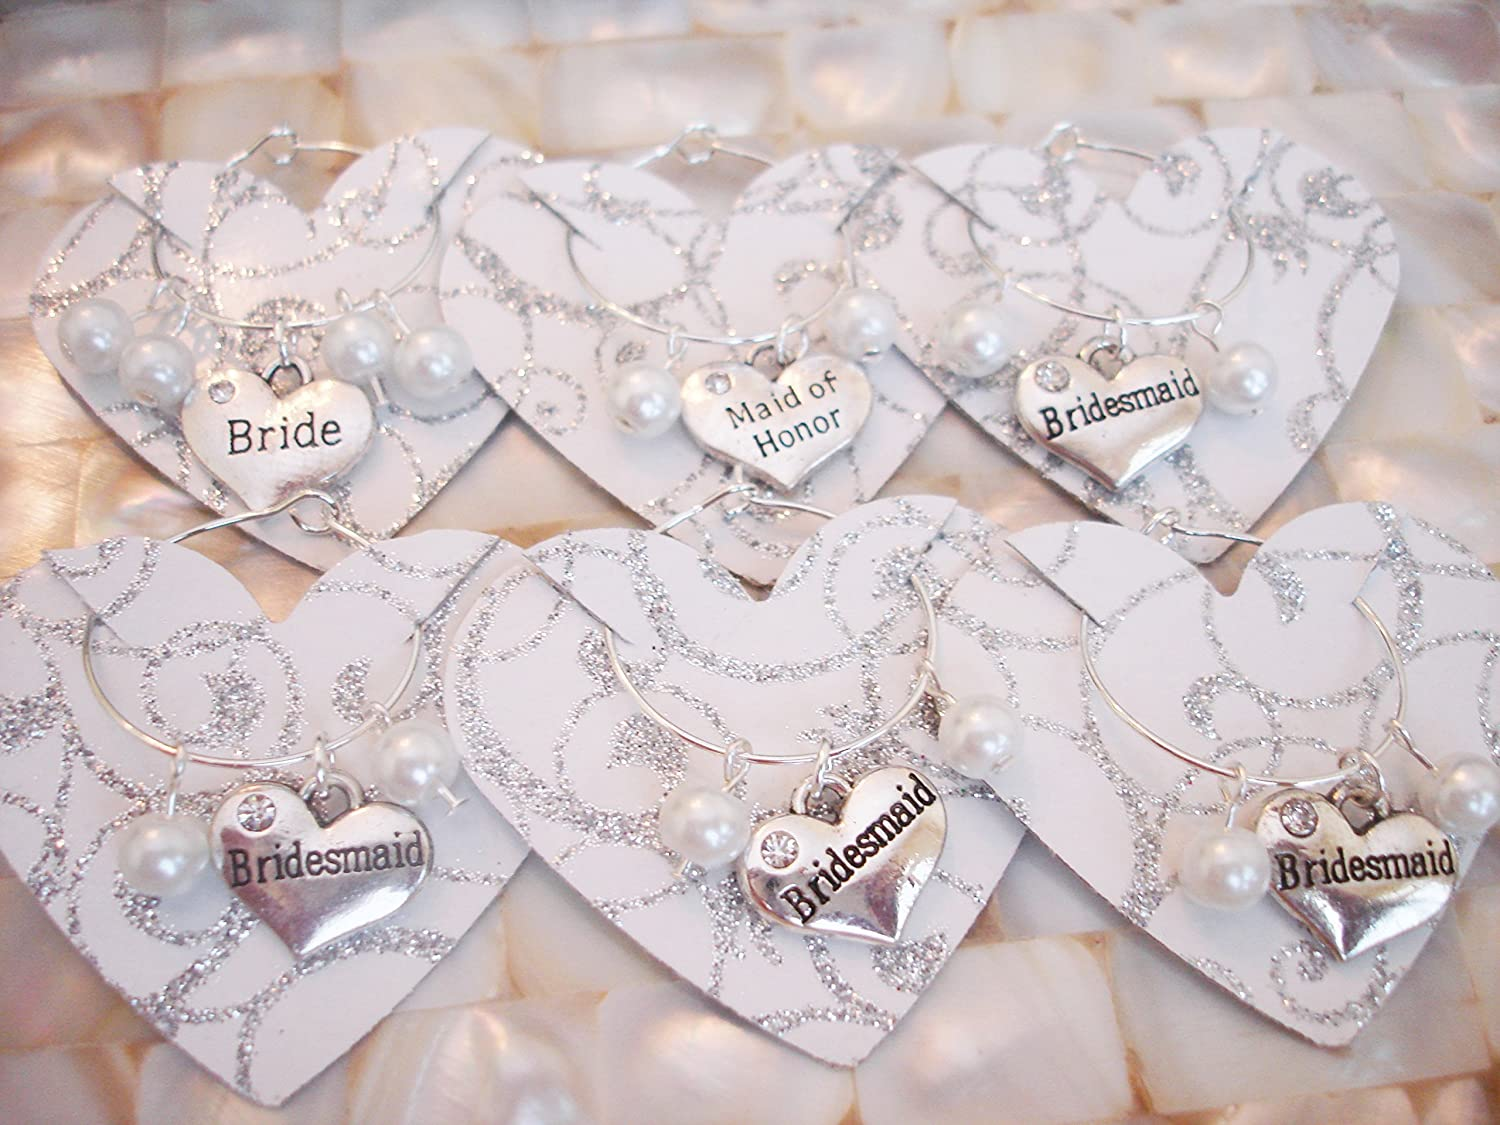 Amazon.com: Wedding Wine Glass Charms, Bridal Party Favor: Handmade